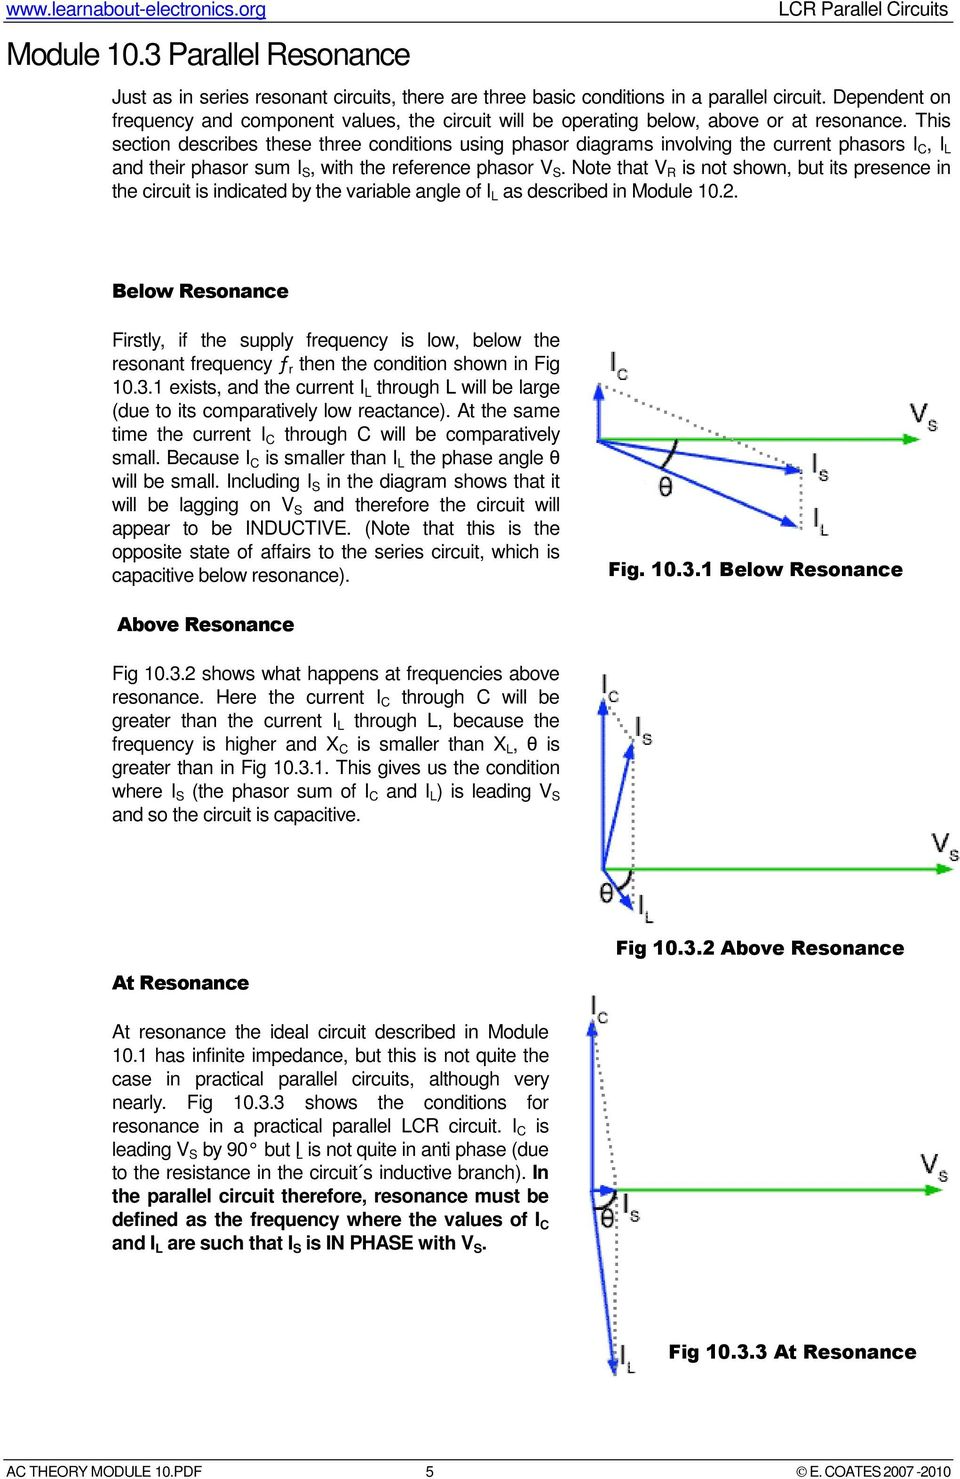 Lcr Parallel Circuits Pdf Currents In Rc And Rl With Increasing Frequency This Section Describes These Three Conditions Using Phasor Diagrams Involving The Current Phasors I C L